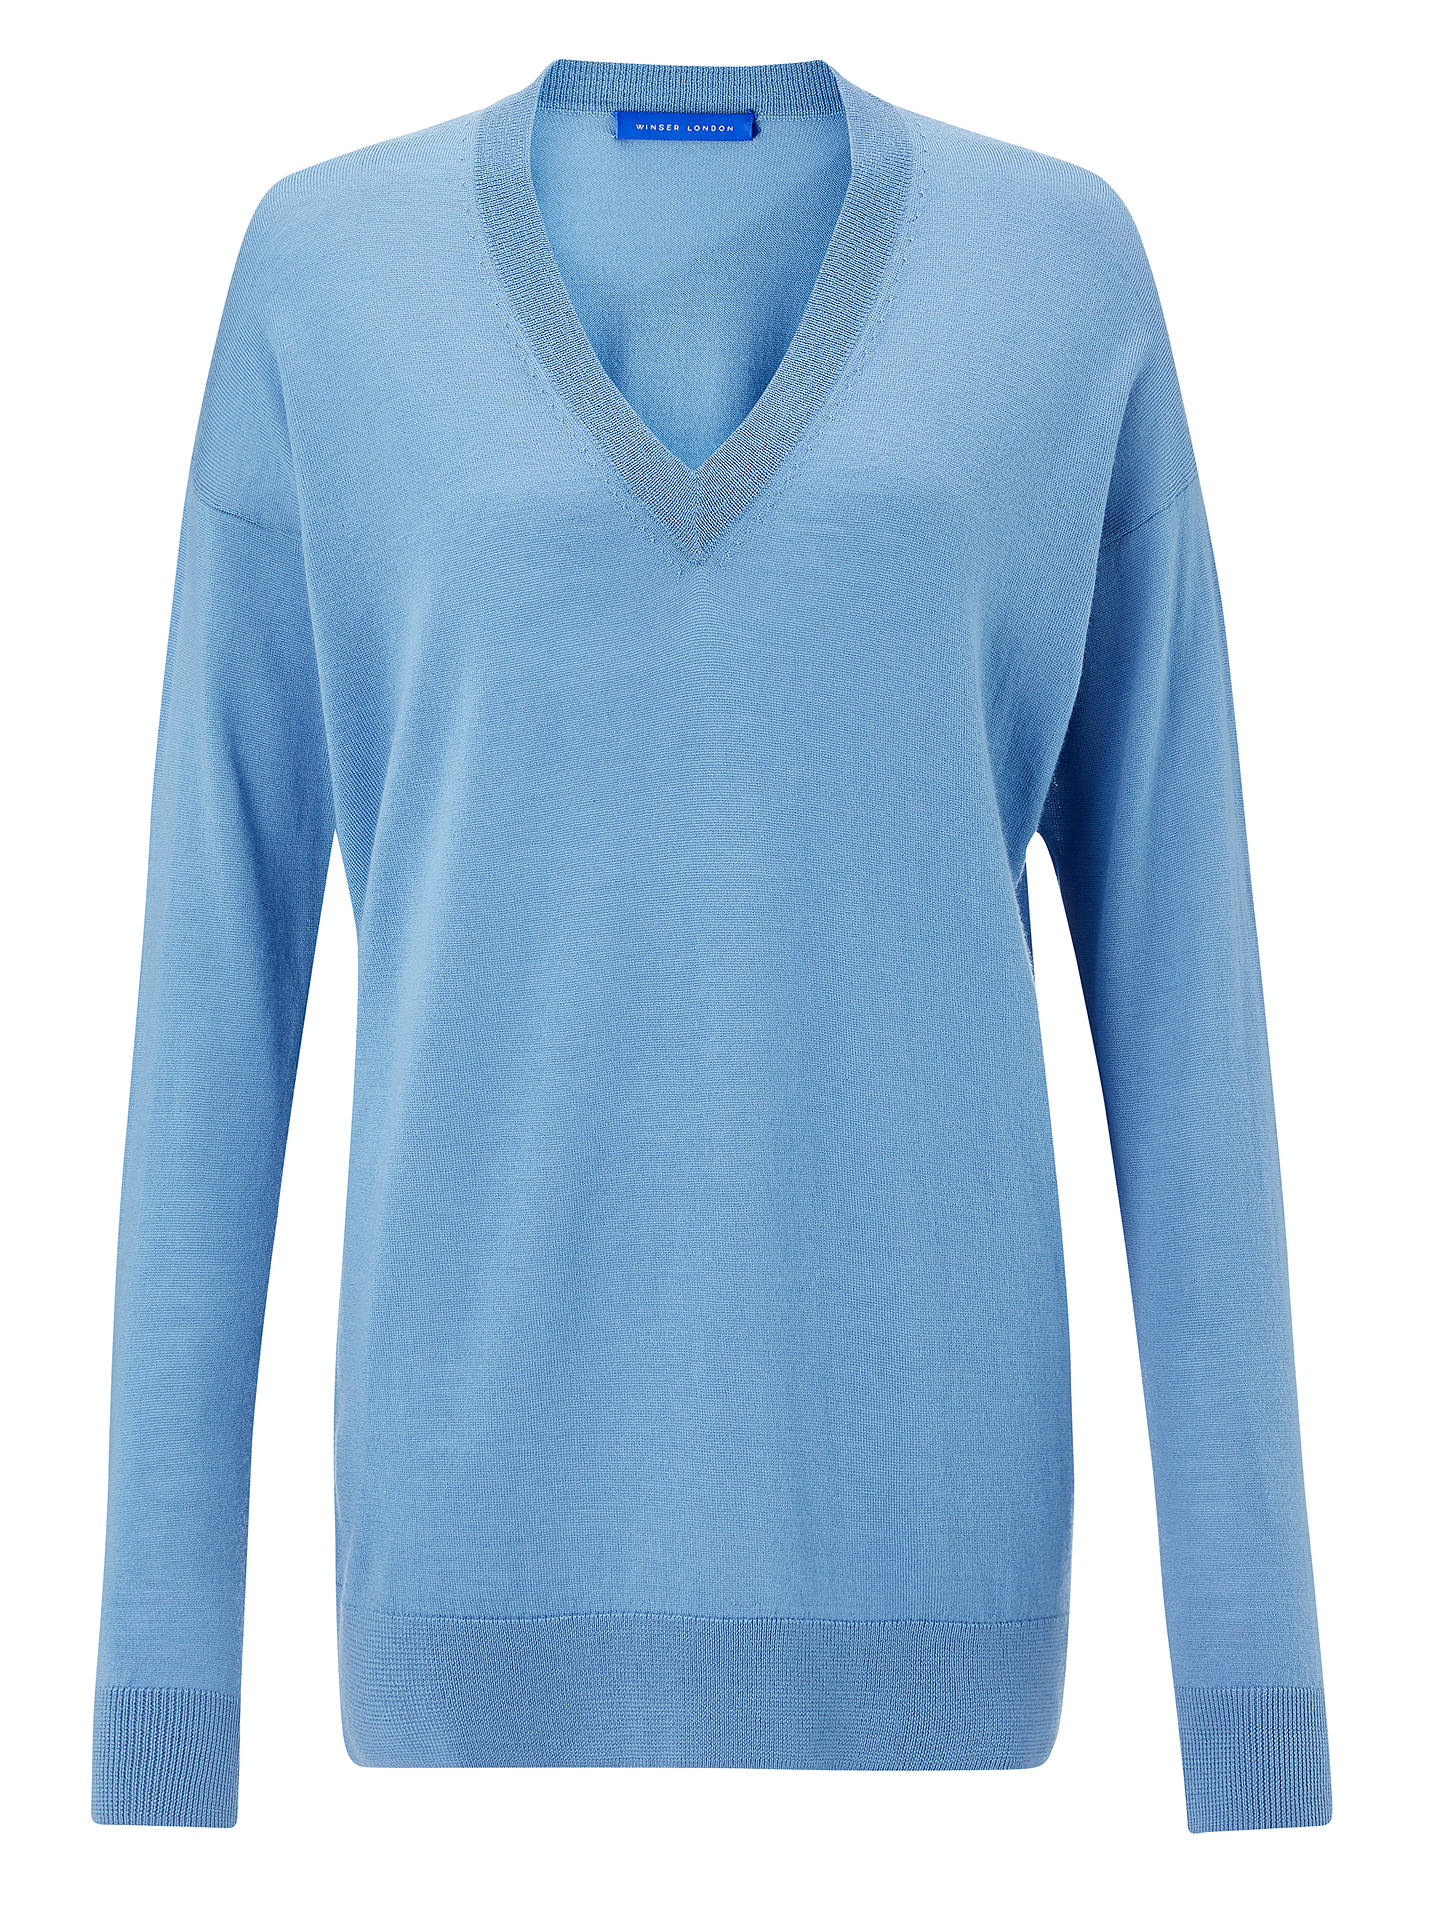 Buy Winser London Boyfriend Jumper, Duck Egg, L Online at johnlewis.com